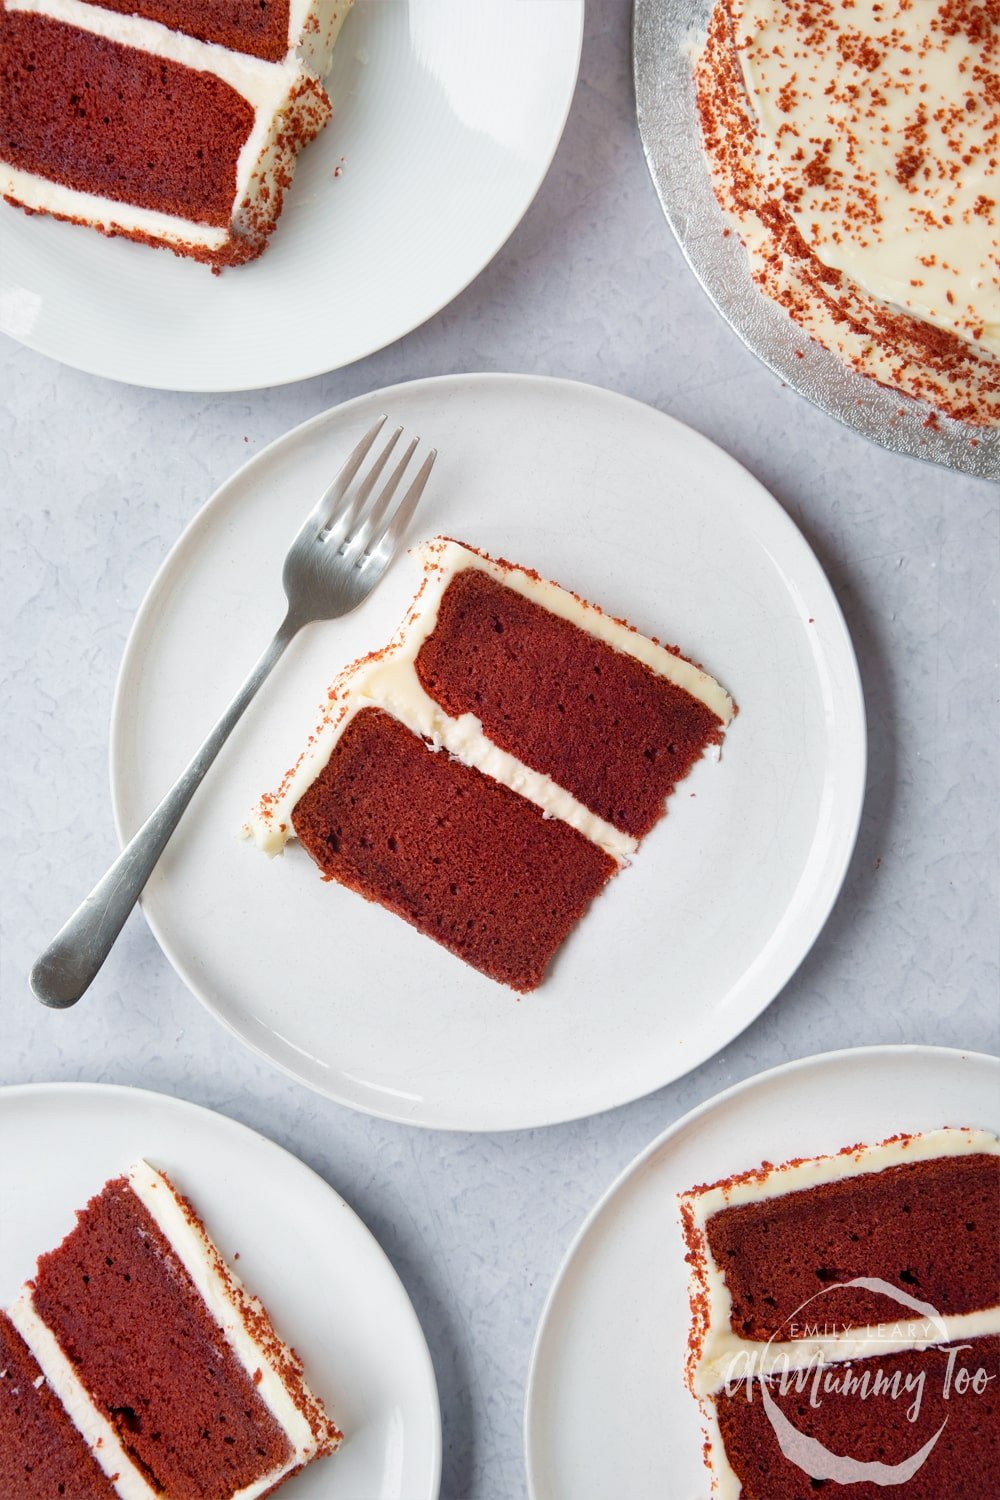 A slice of filled red velvet cake on a white plate. A fork rests on the plate. More slices of cake are shown to the edges of the frame.